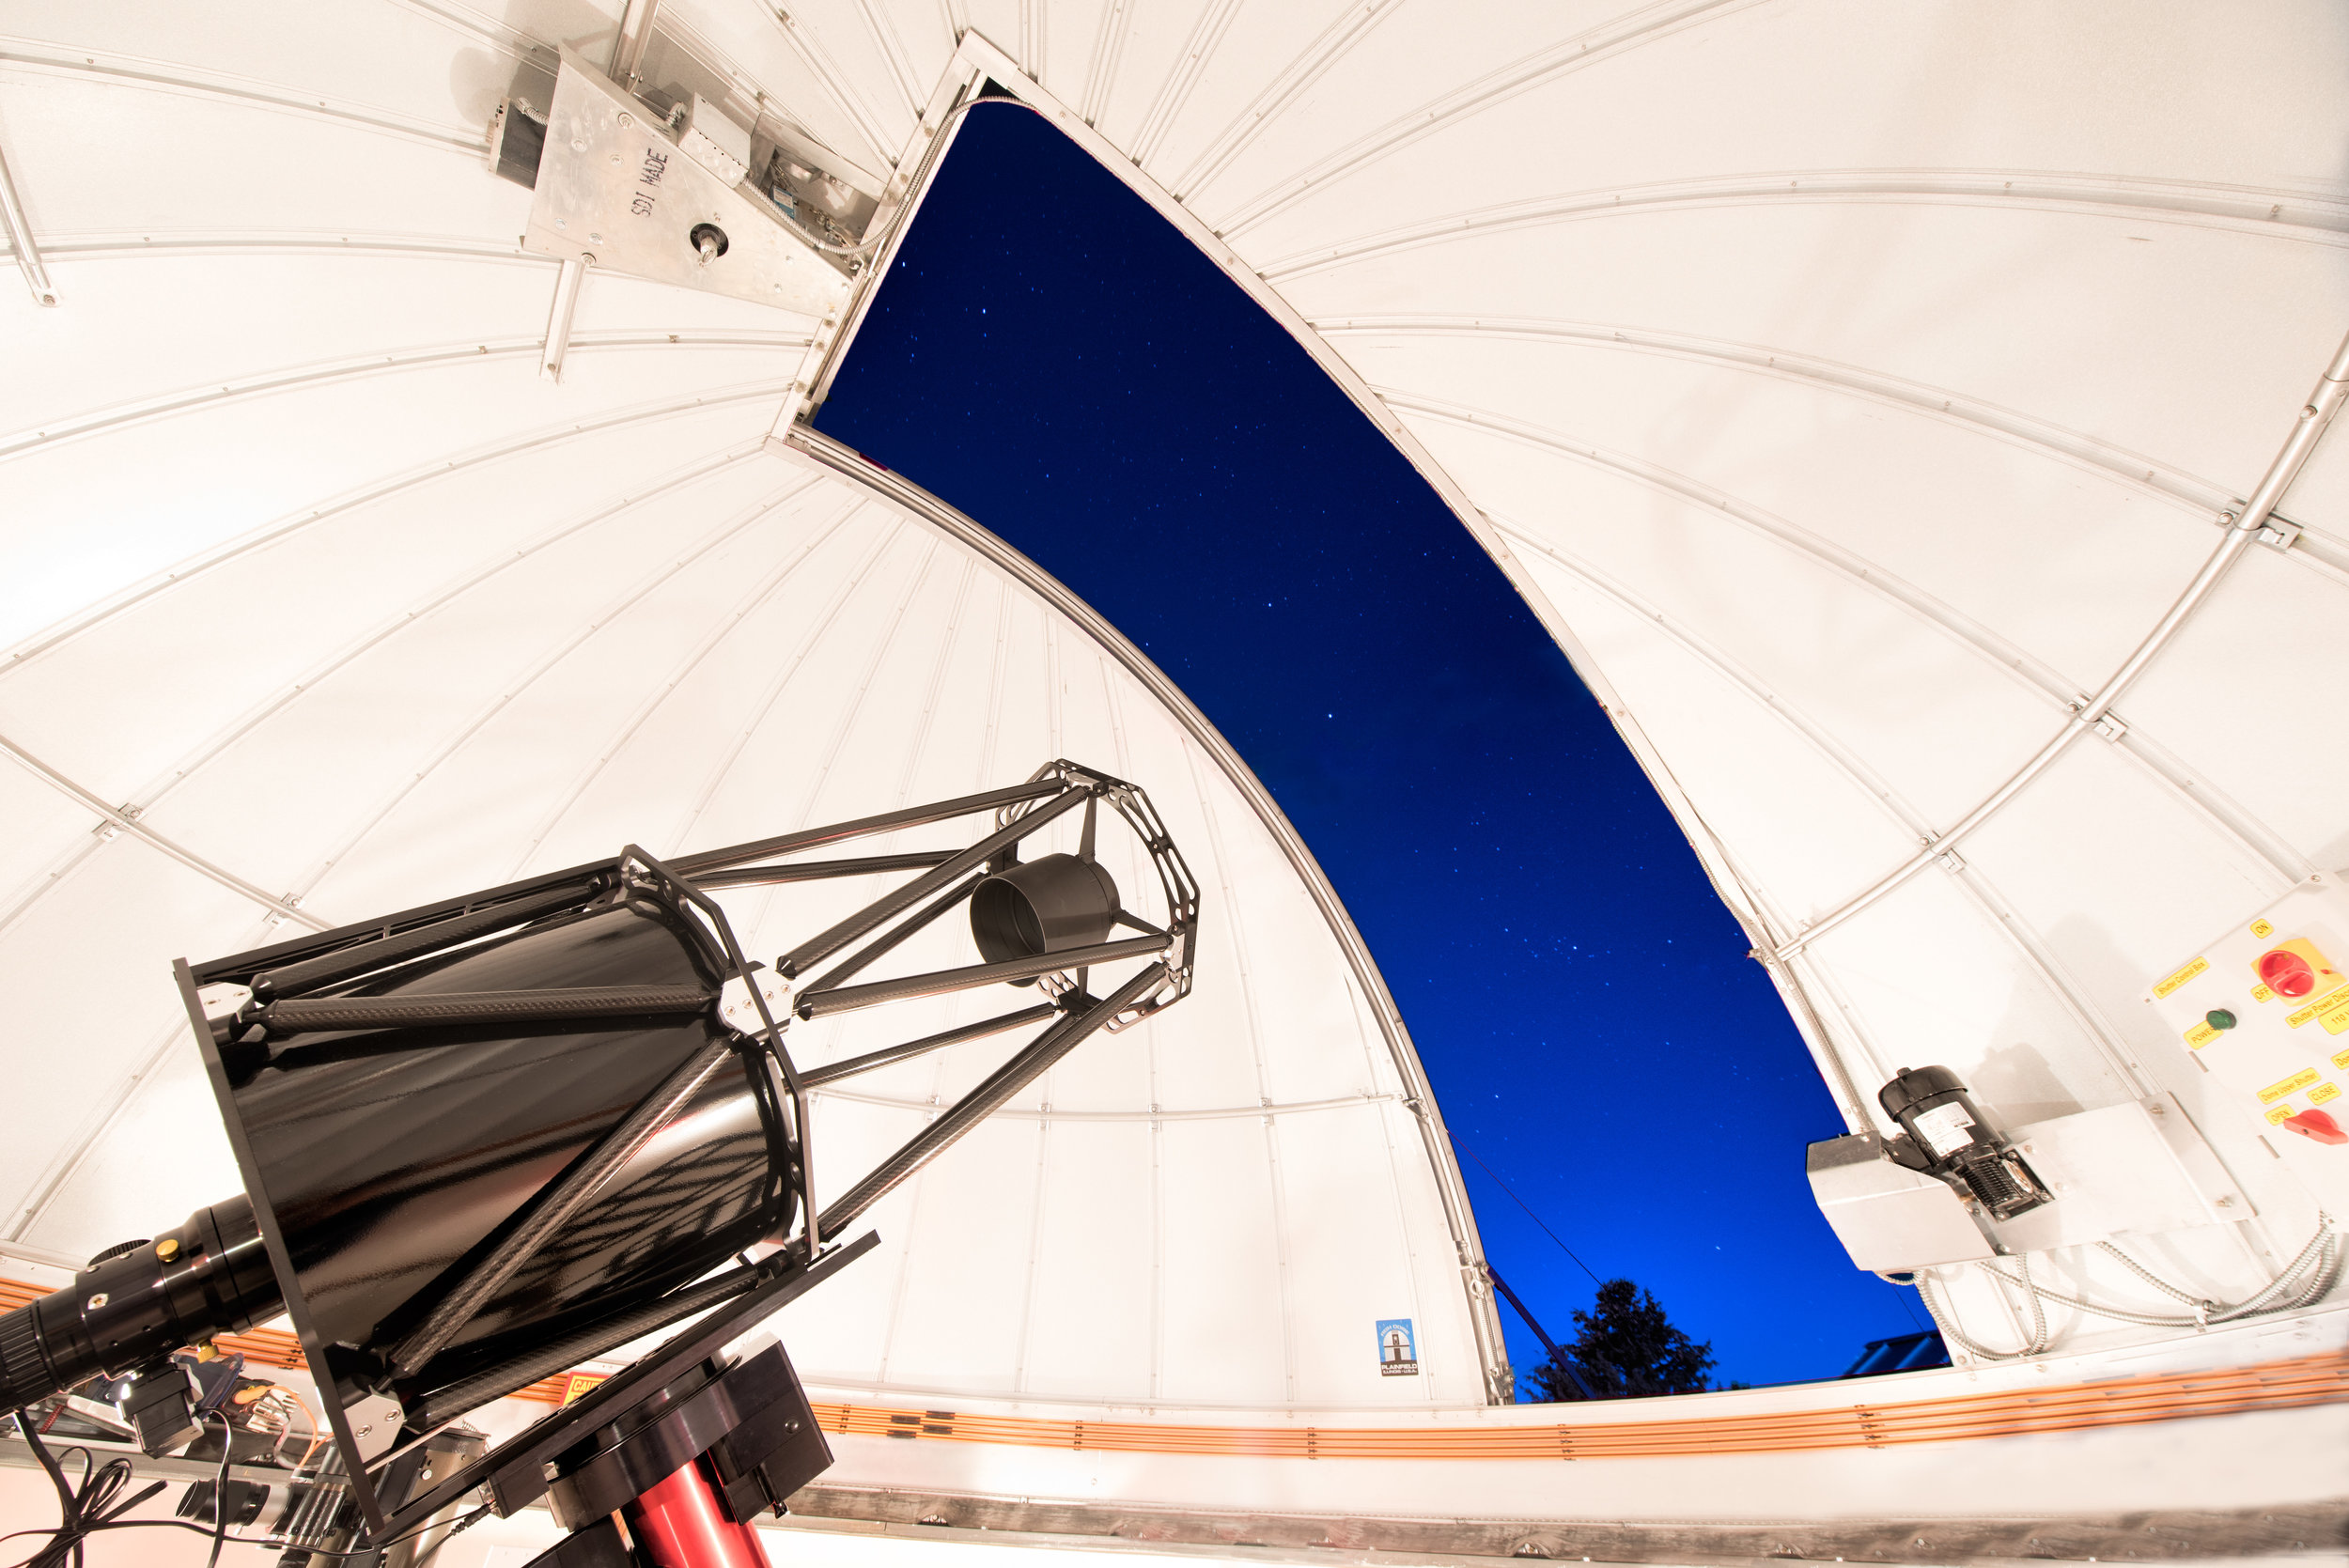 Under the Hood - The Observatory's 16-inch aperture Ritchey-Chretien style telescope is designed with hyperbolic shaped mirrors like the Hubble Space Telescope, which offer an exceptionally flat view of objects avoiding image distortions introduced by many other amateur telescopes. The telescope is perched on a precision-built Paramount mount which provides a great degree of accuracy while tracking celestial objects. With imaging equipment the observatory will excel at capturing colorful images of elusive deep sky objects including nebulae and distant galaxies.